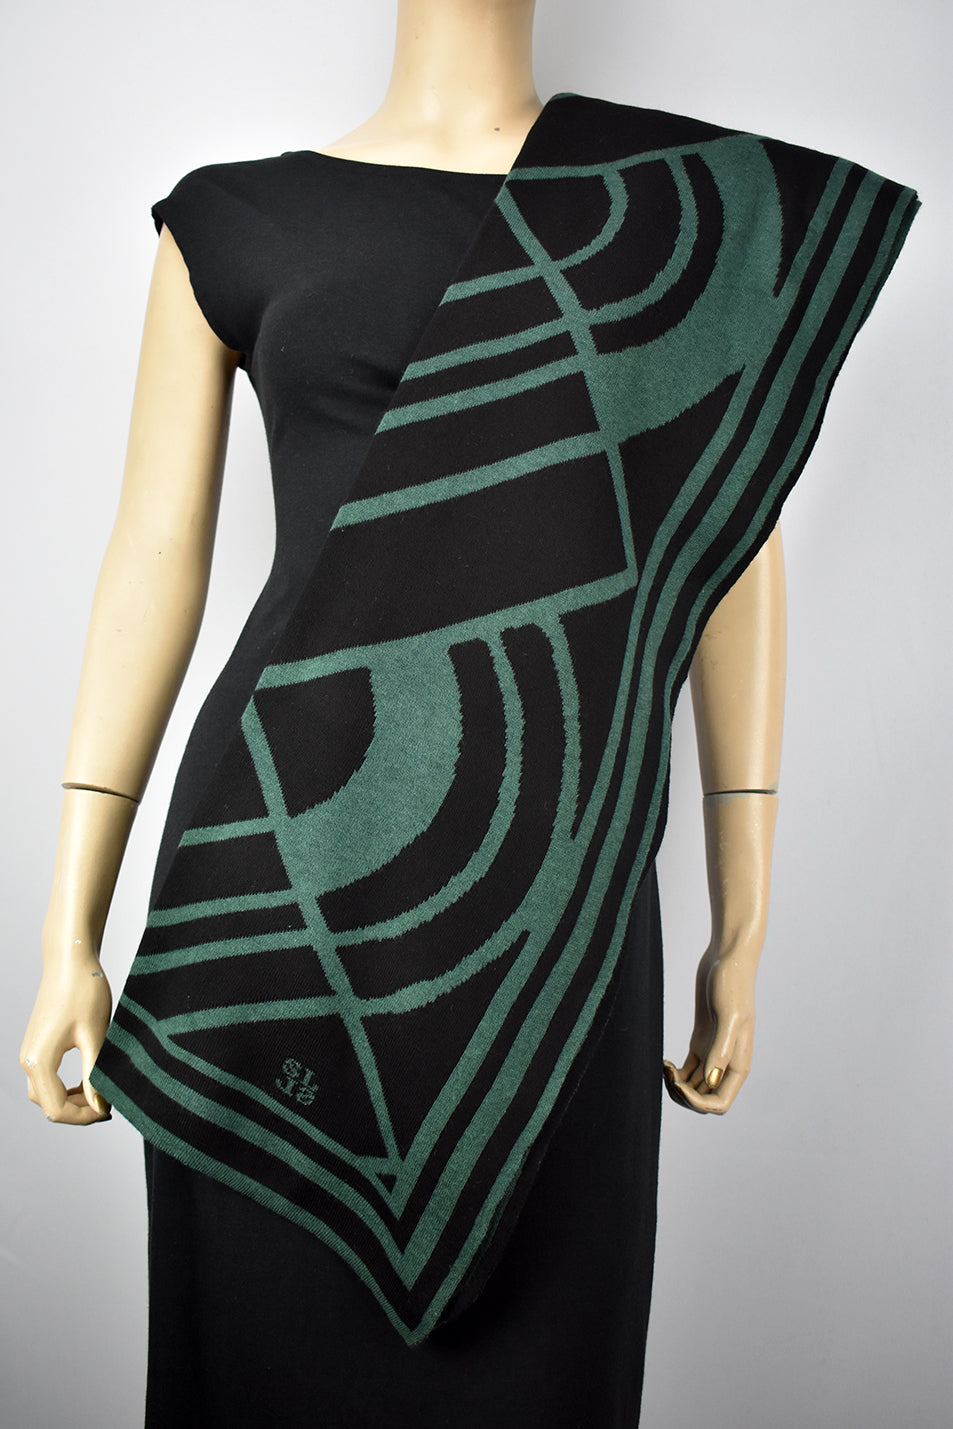 Deco Shawl Scarve Wrap Hunter Green and Black